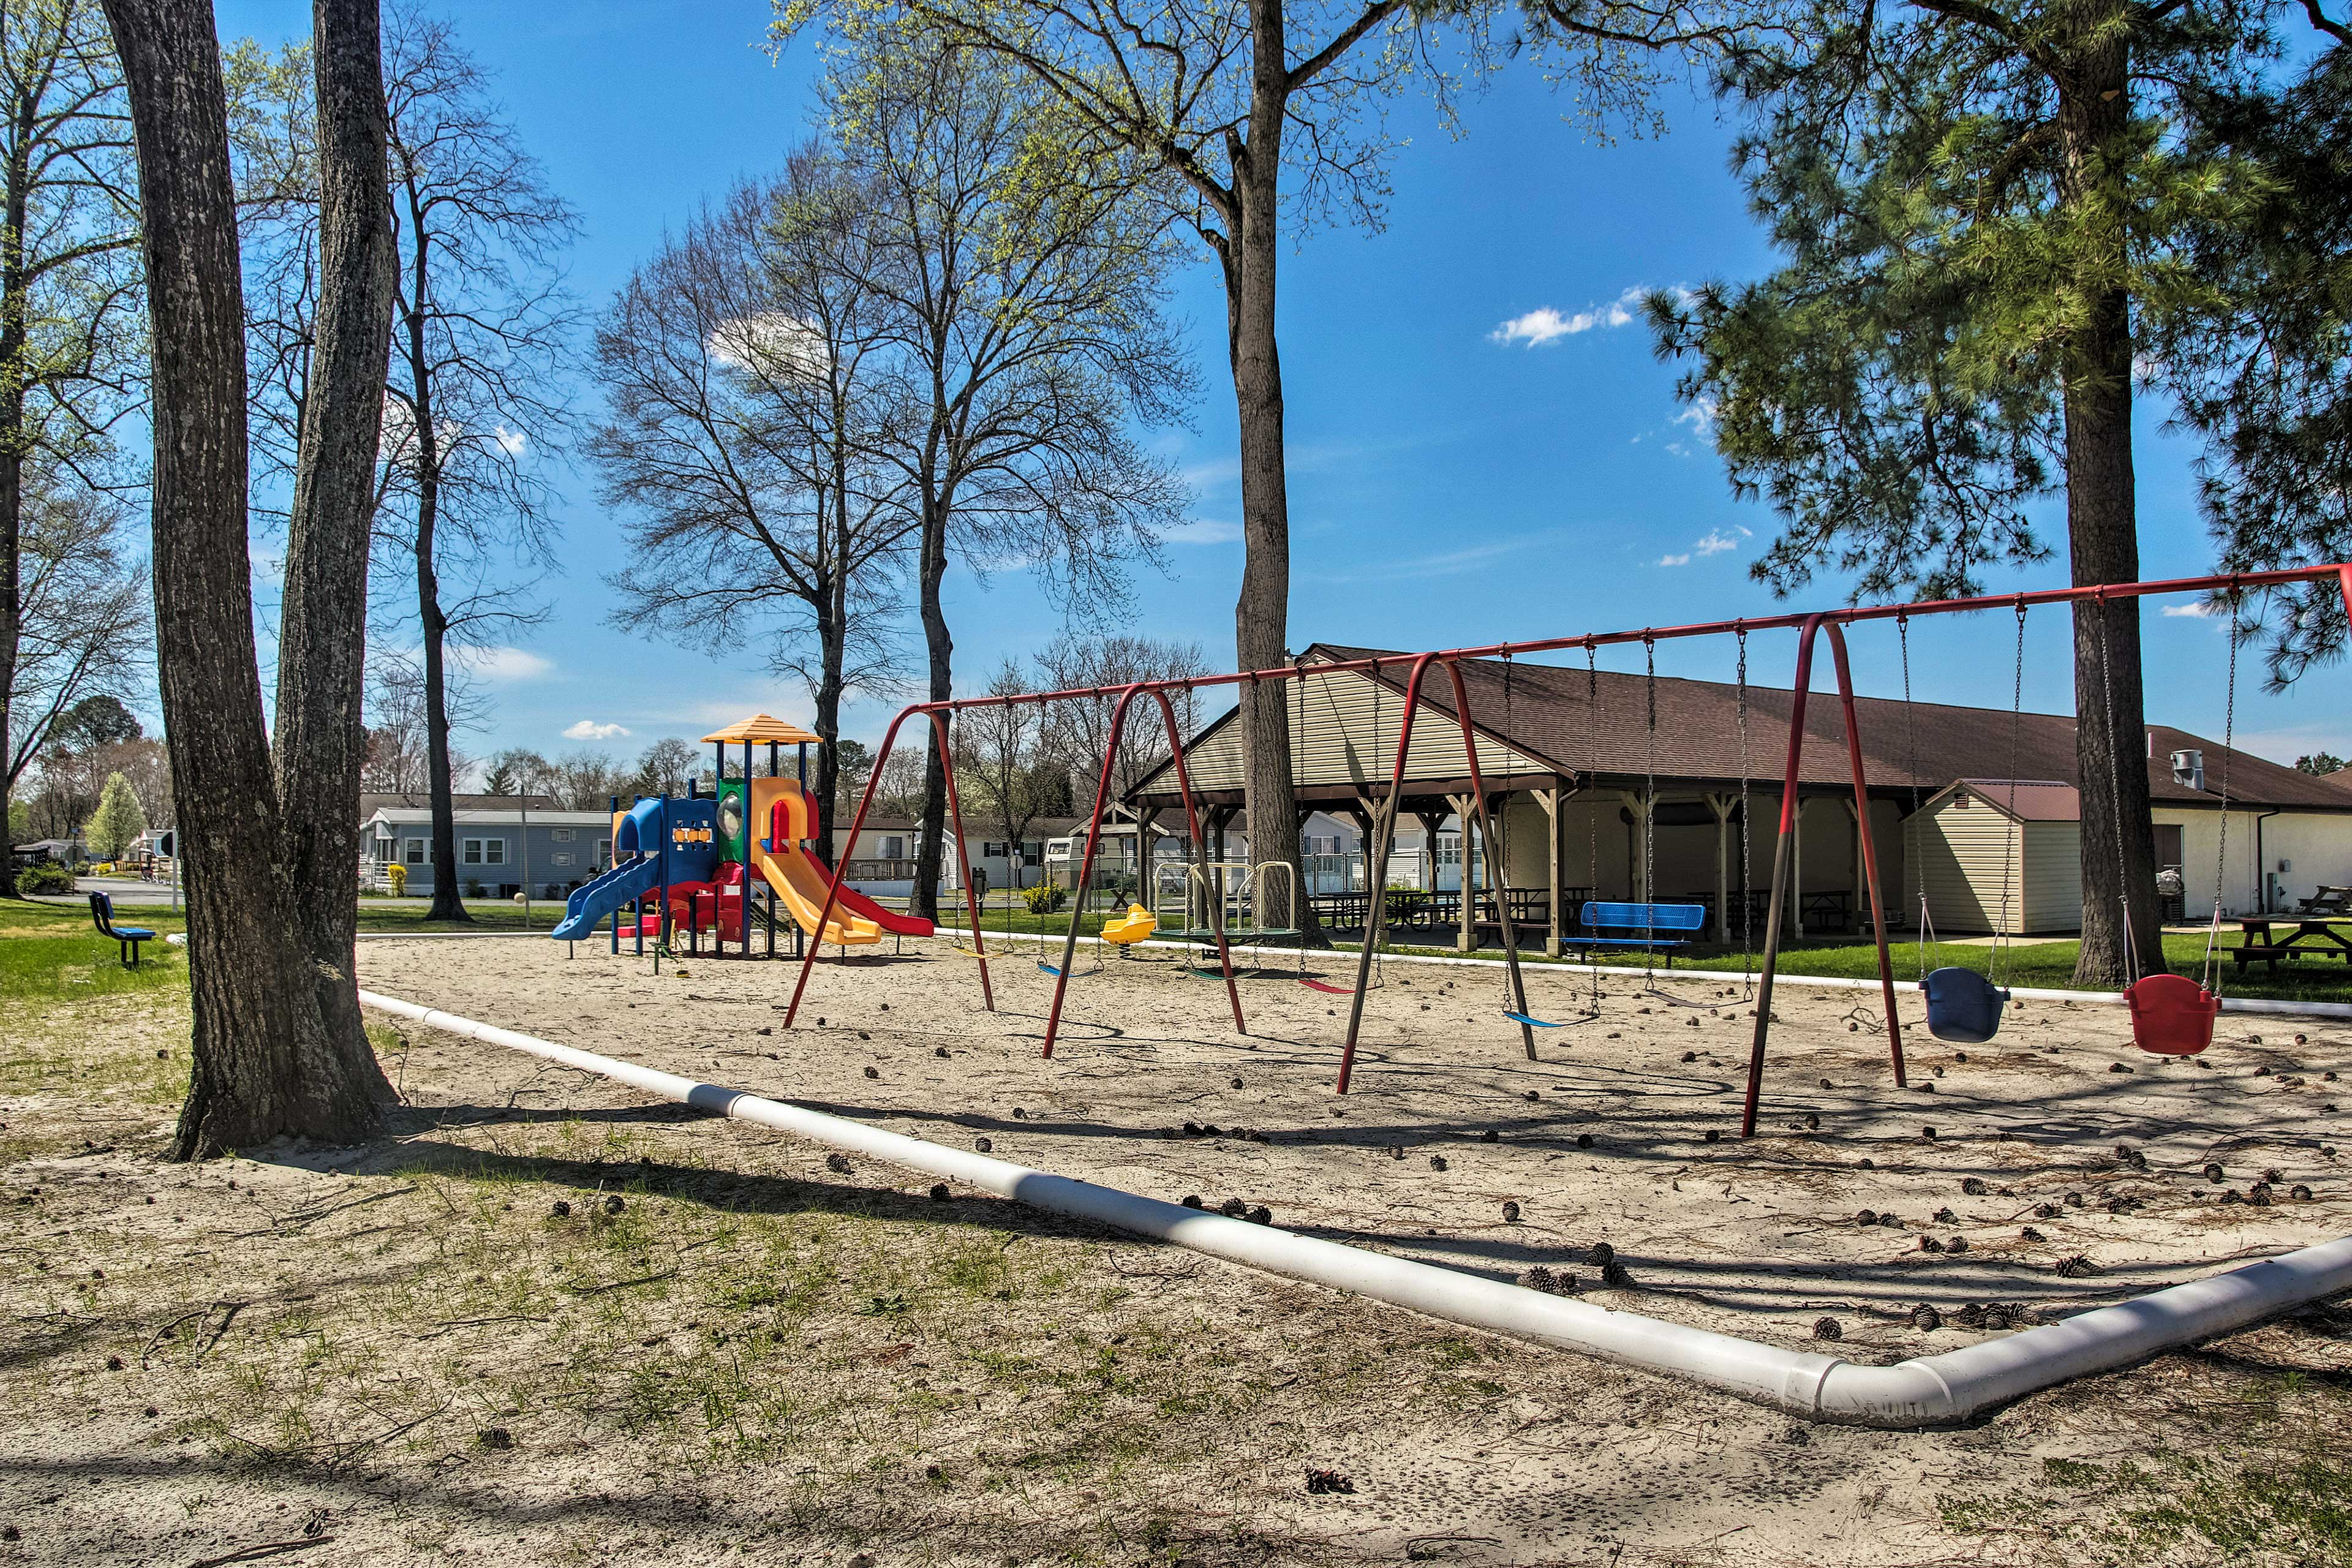 Spend afternoons at the playground and picnic area!